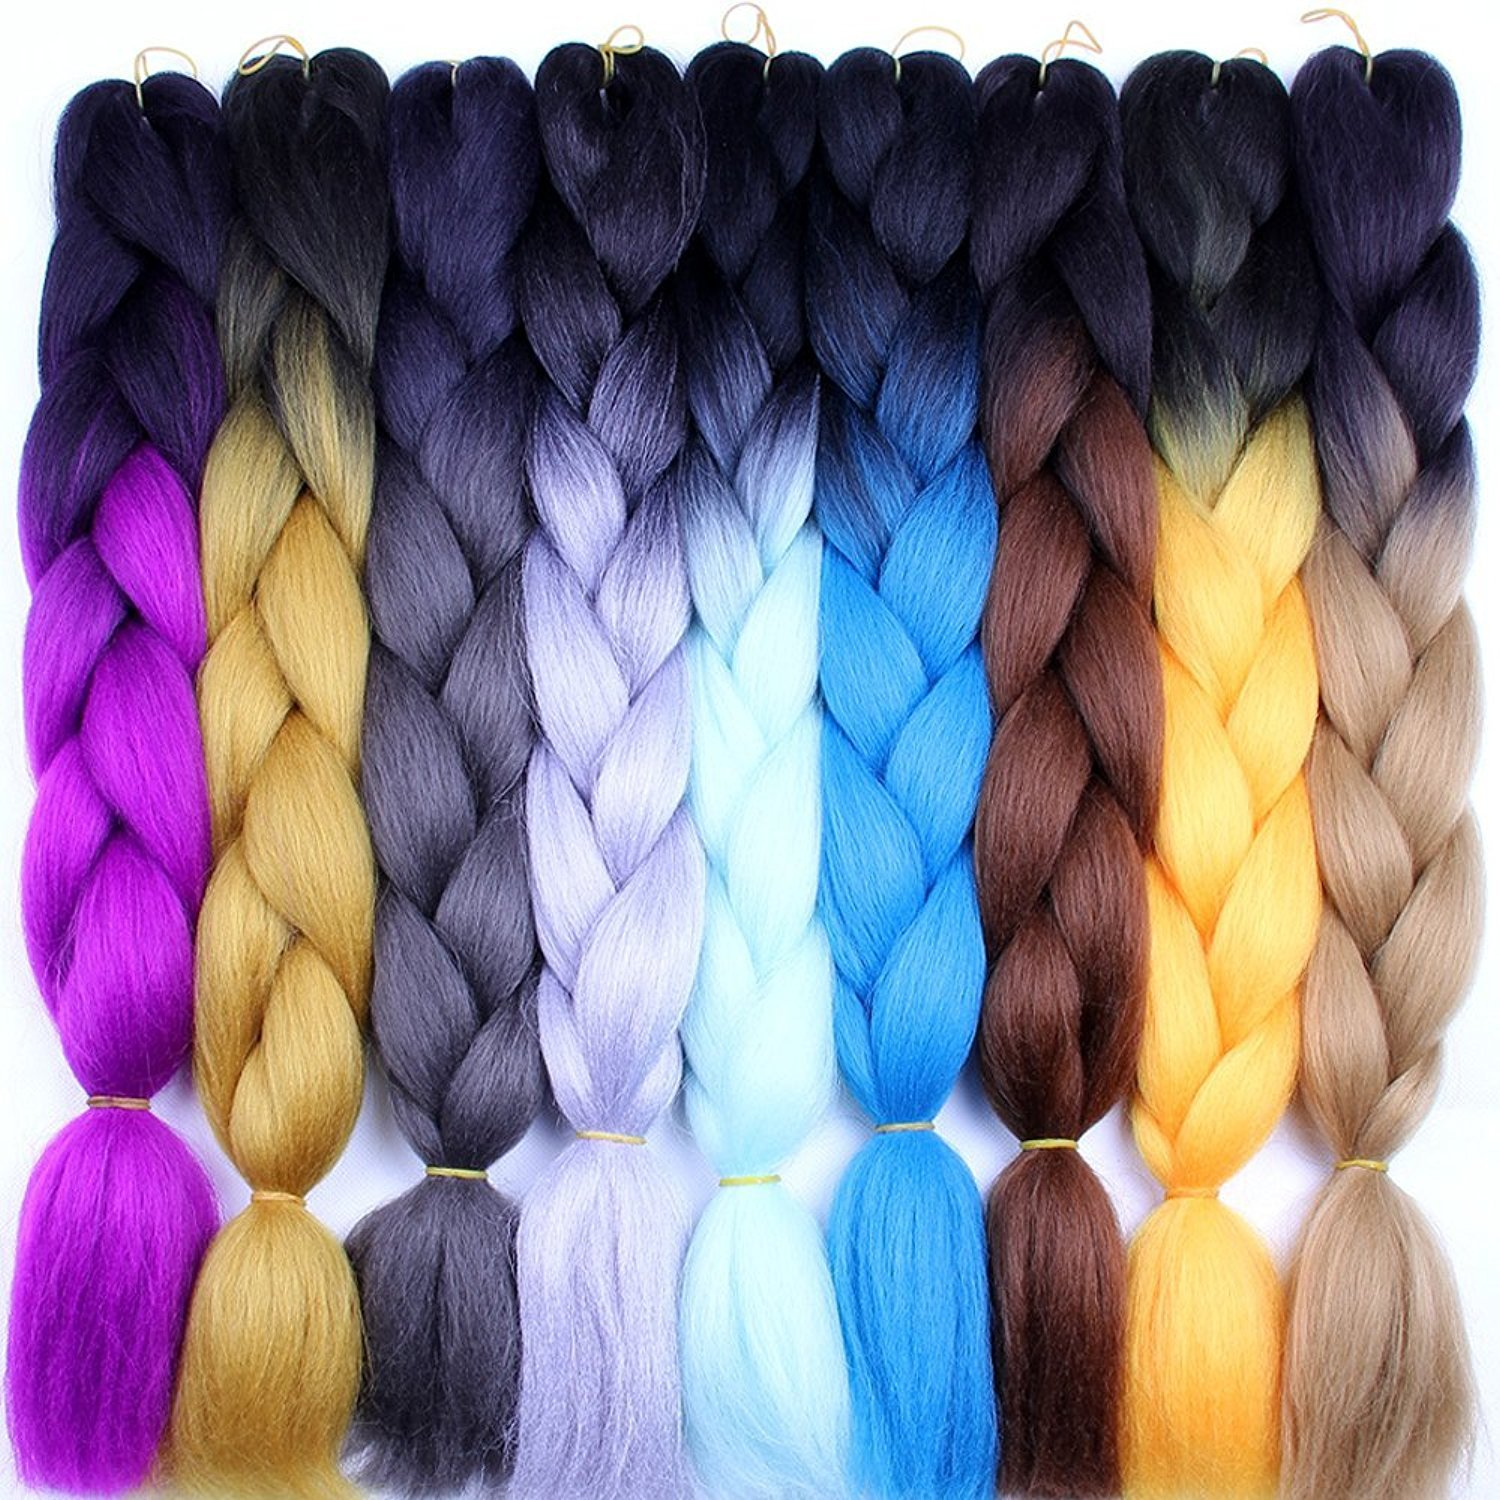 Dilla Beauty 3 pcs/set 24 inch Jumbo Braids calidad superior ...